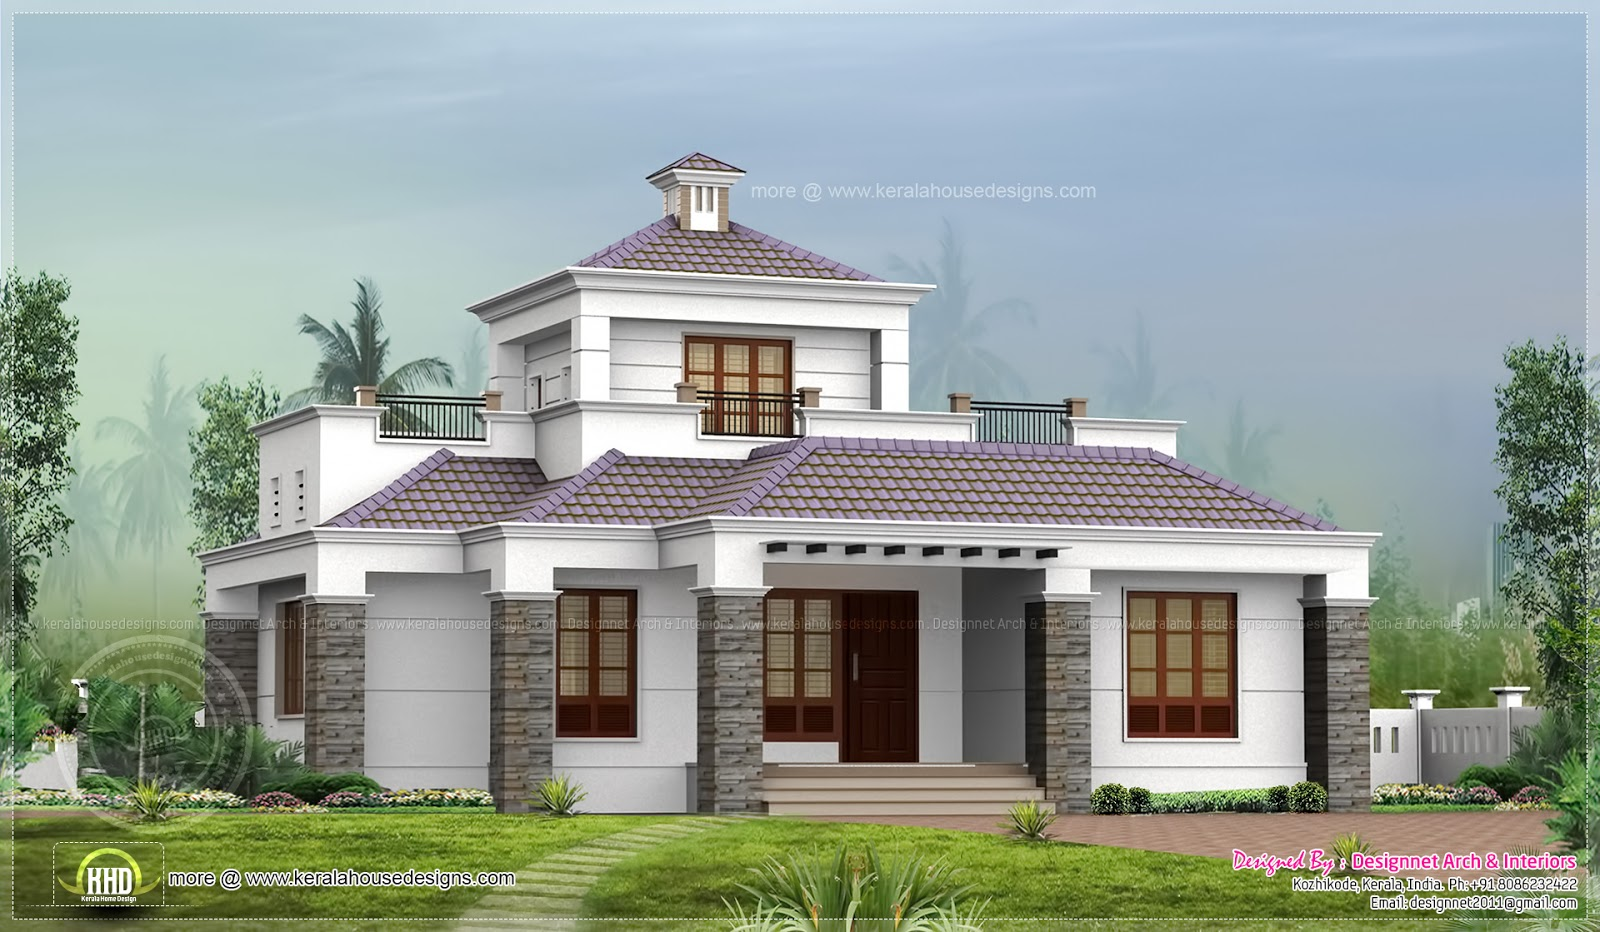 Single Floor Home With Stair Room In 1500 Sq Ft Kerala